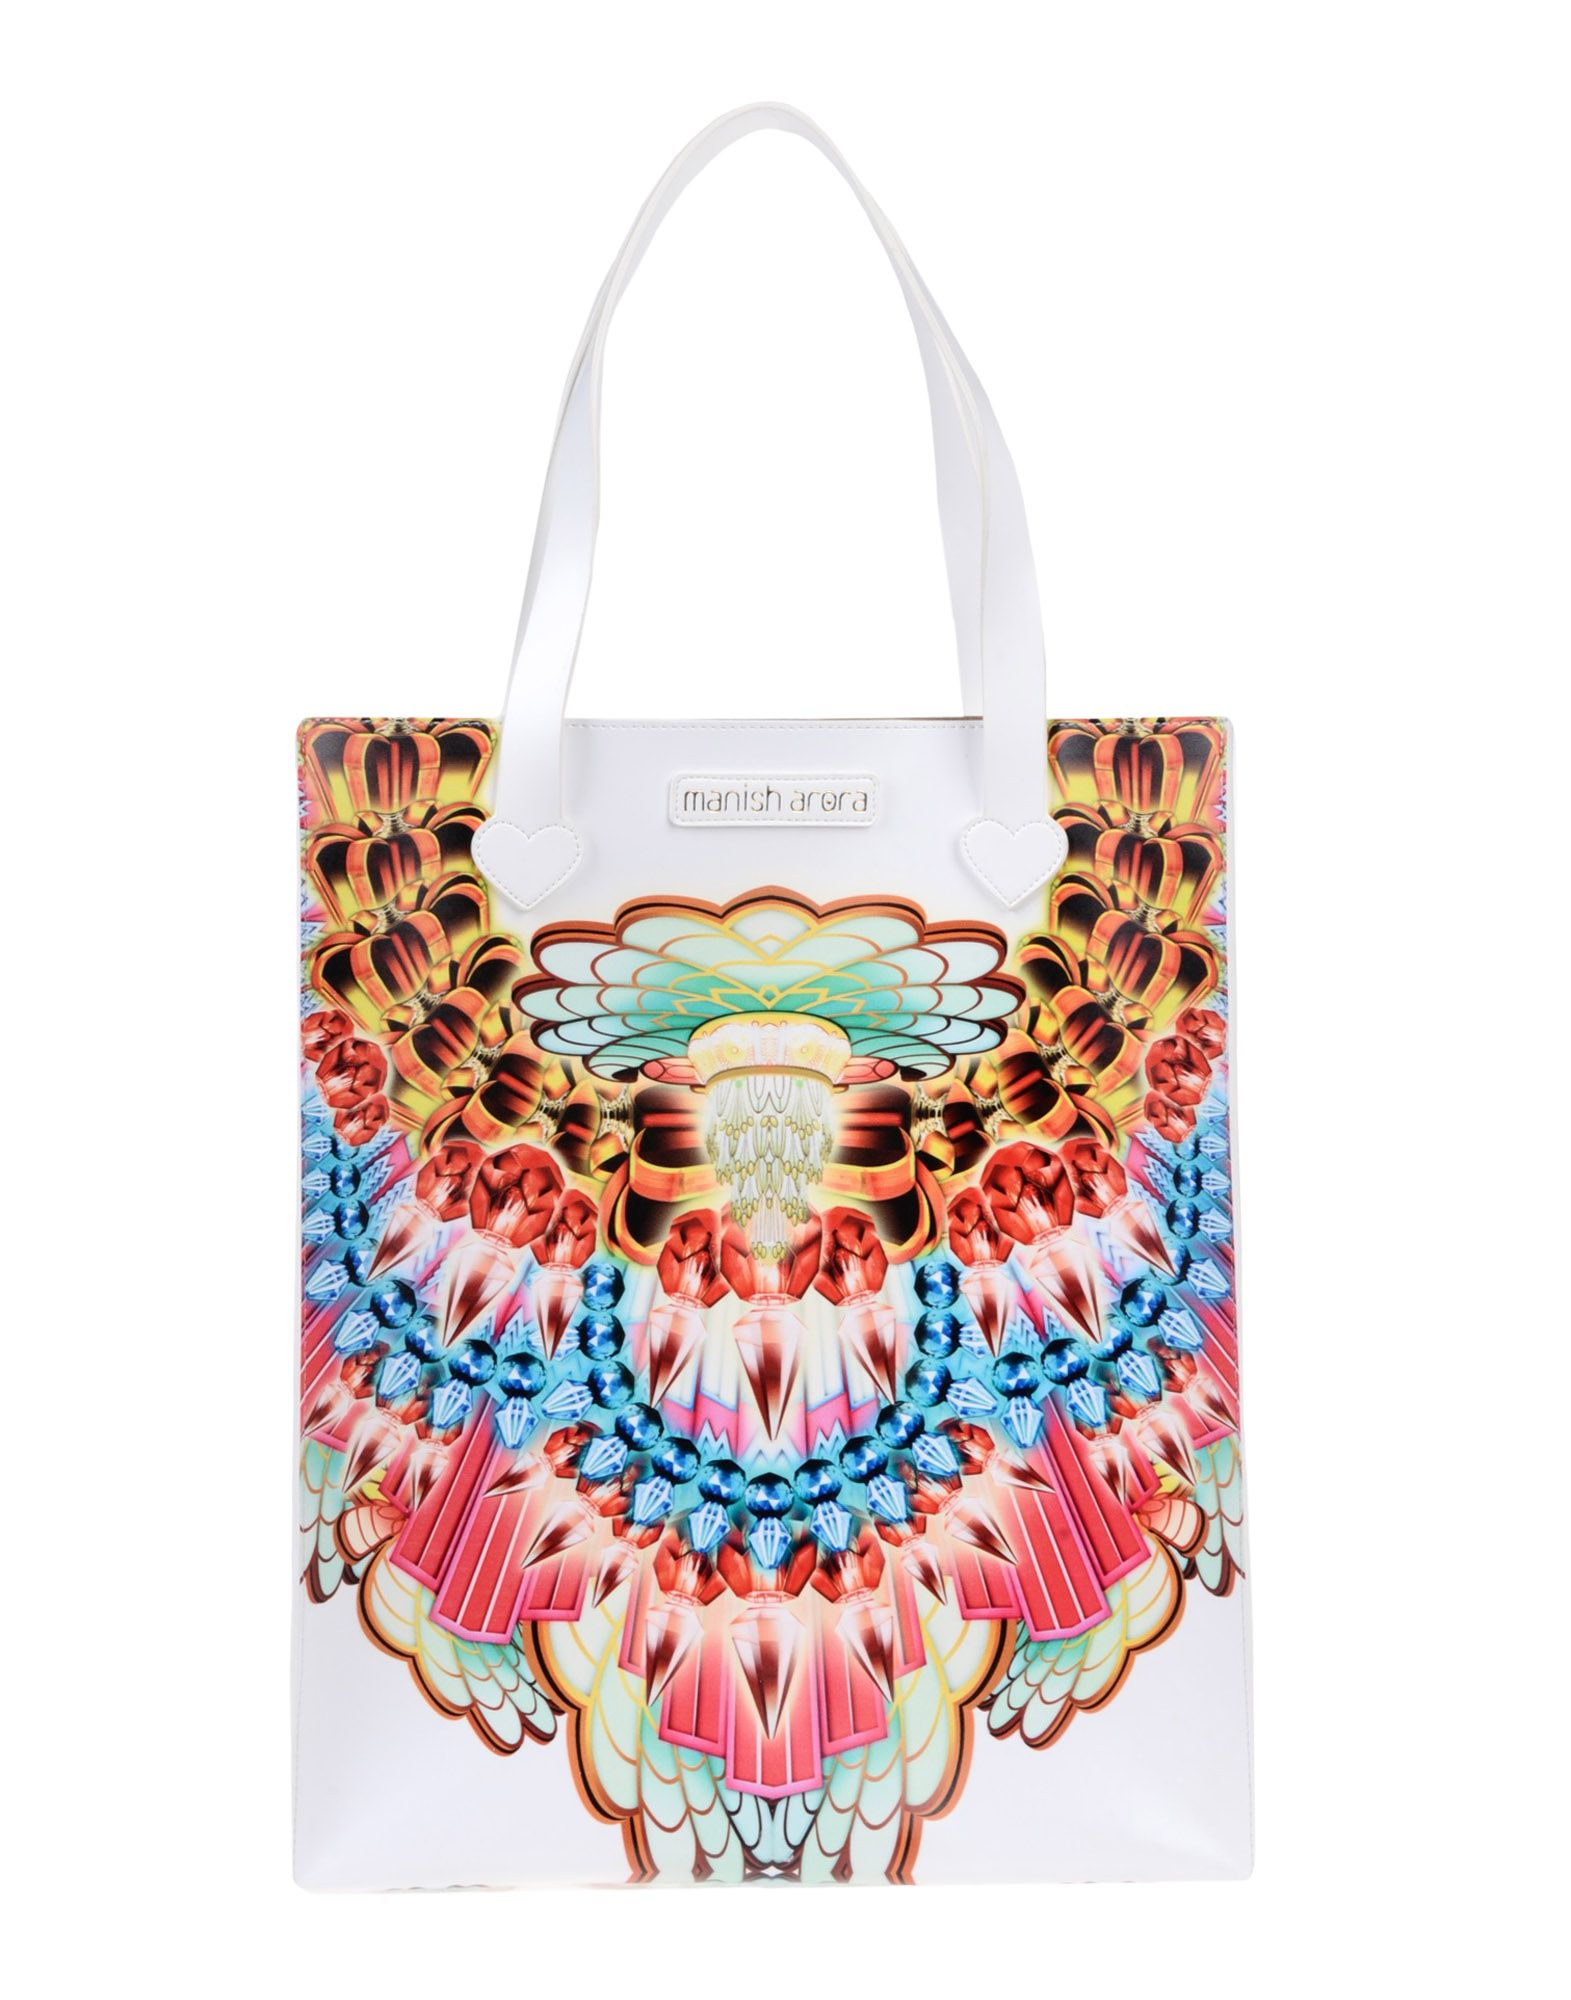 68c0ba38571 Shop Manish Arora Bags for Women - Obsessory